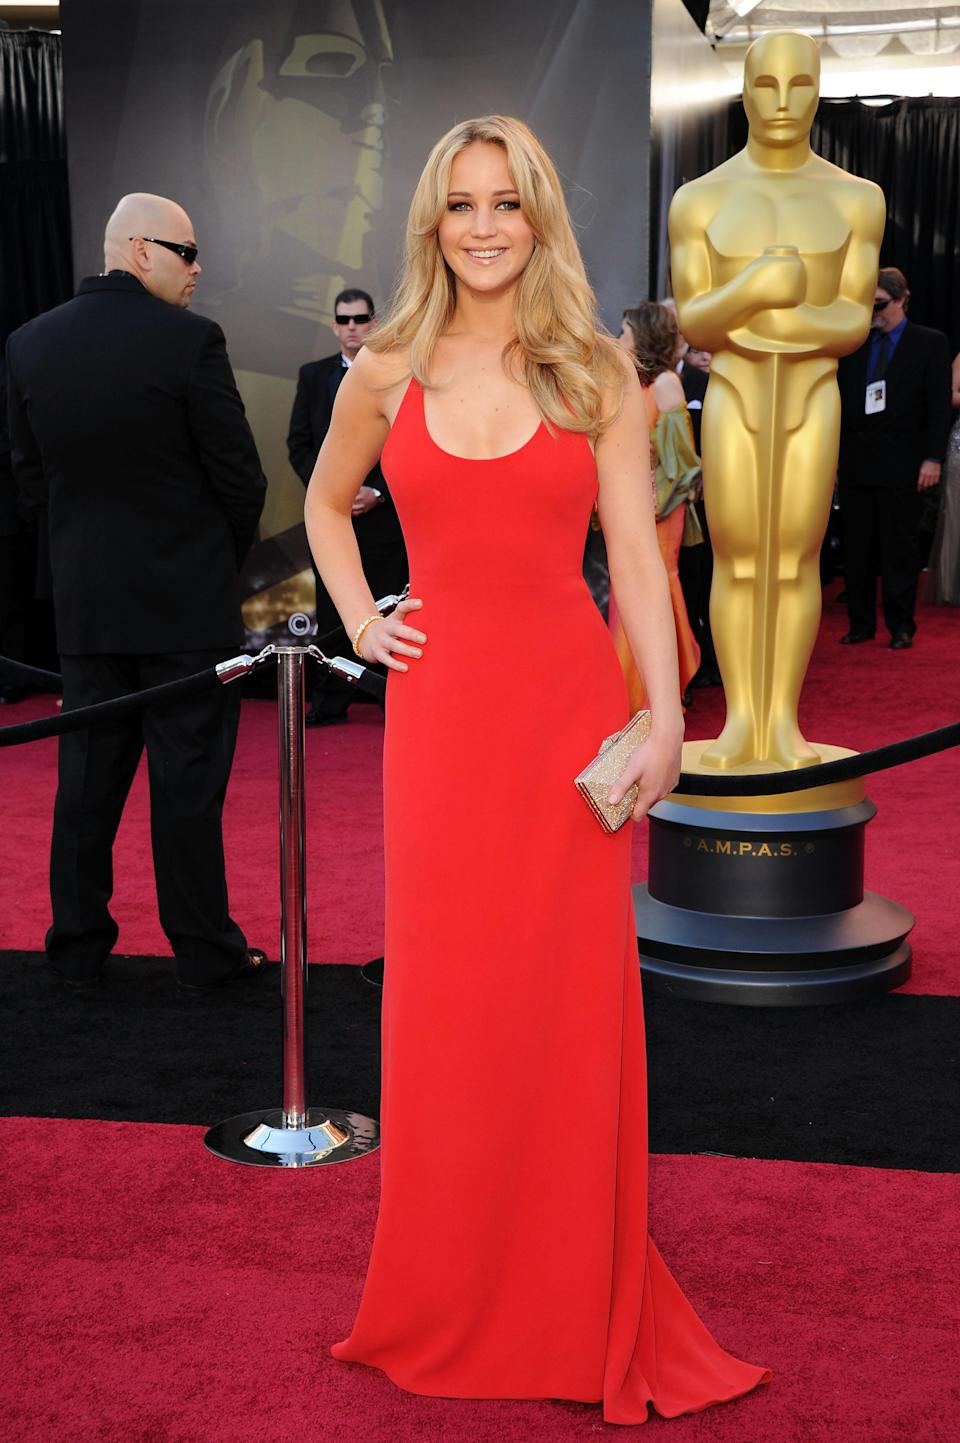 For her first spin on the Oscars red carpet in 2011, Jennifer Lawrence channelled a 00s supermodel in her form-fitting red gown. Completely fuss-free, it proved that sometimes less is far more.